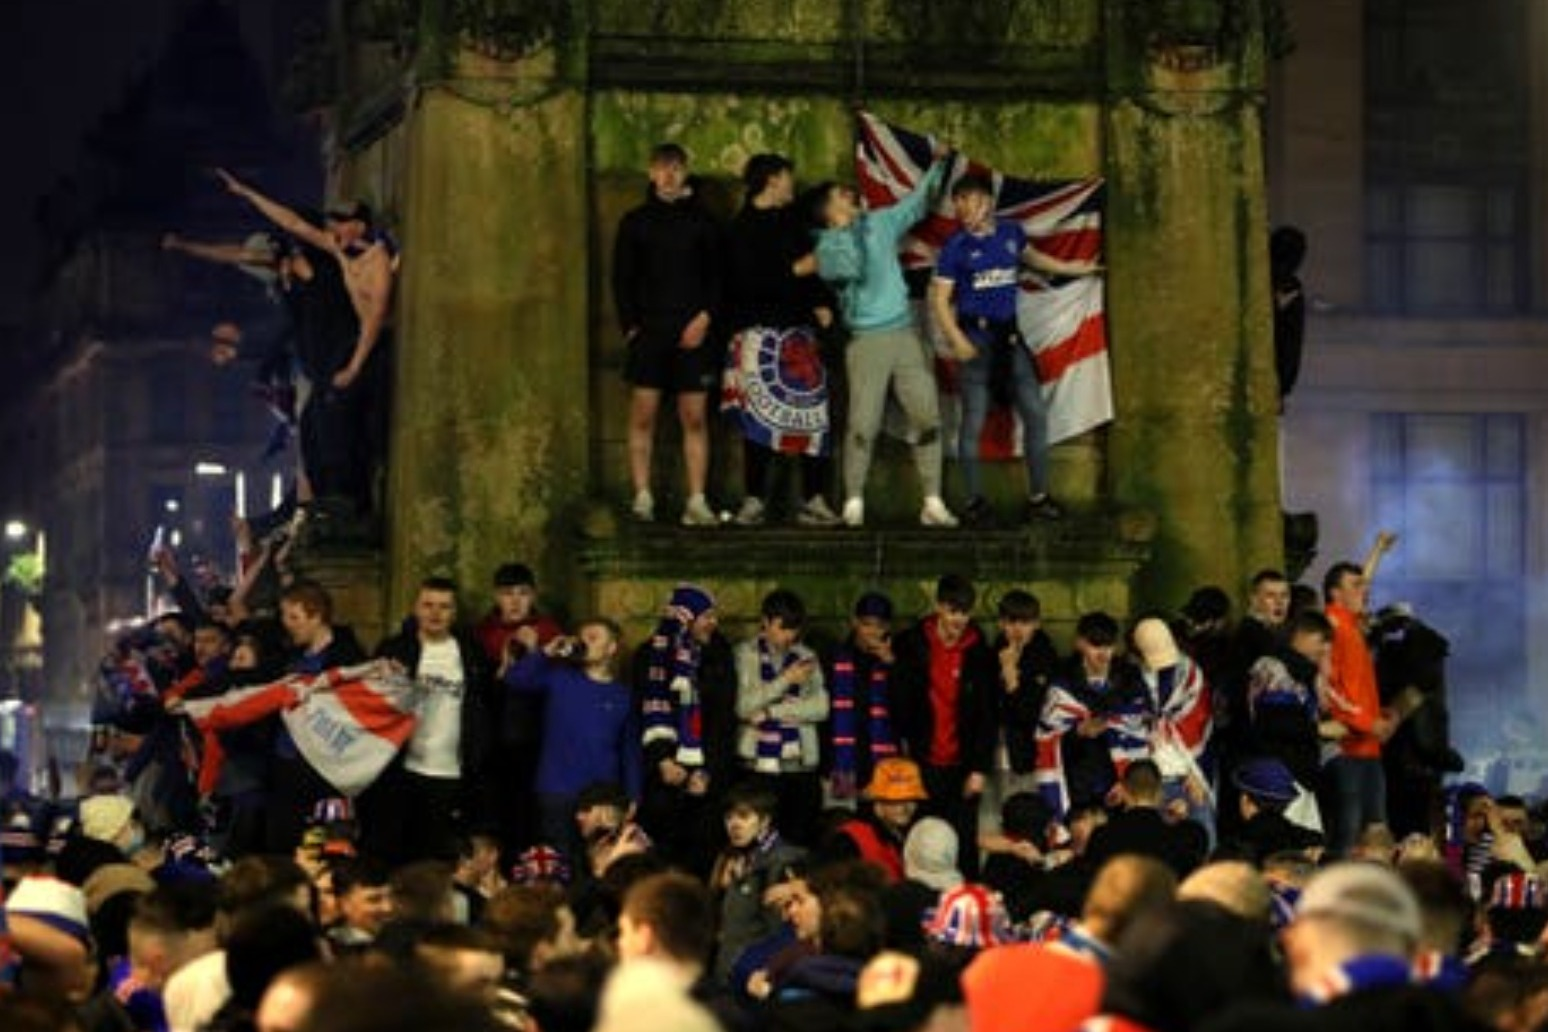 Sturgeon condemns 'infuriating' scenes as Rangers fans urged to 'go home'